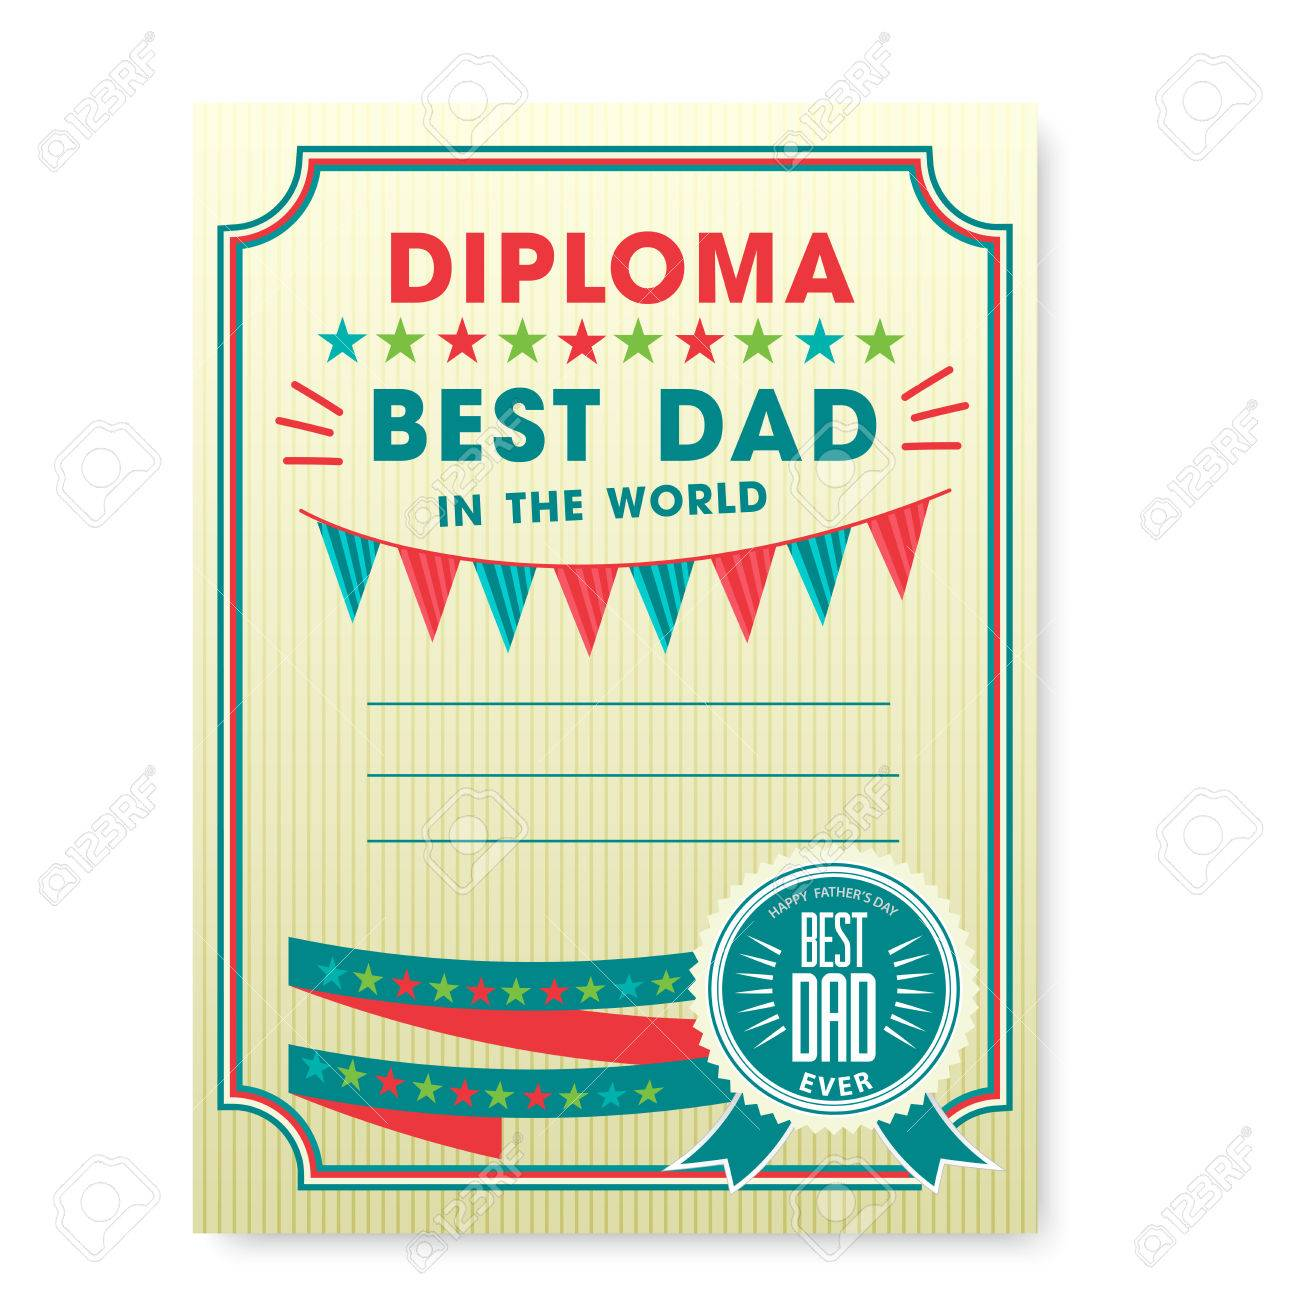 happy fathers day card vintage retro worlds best dad diploma